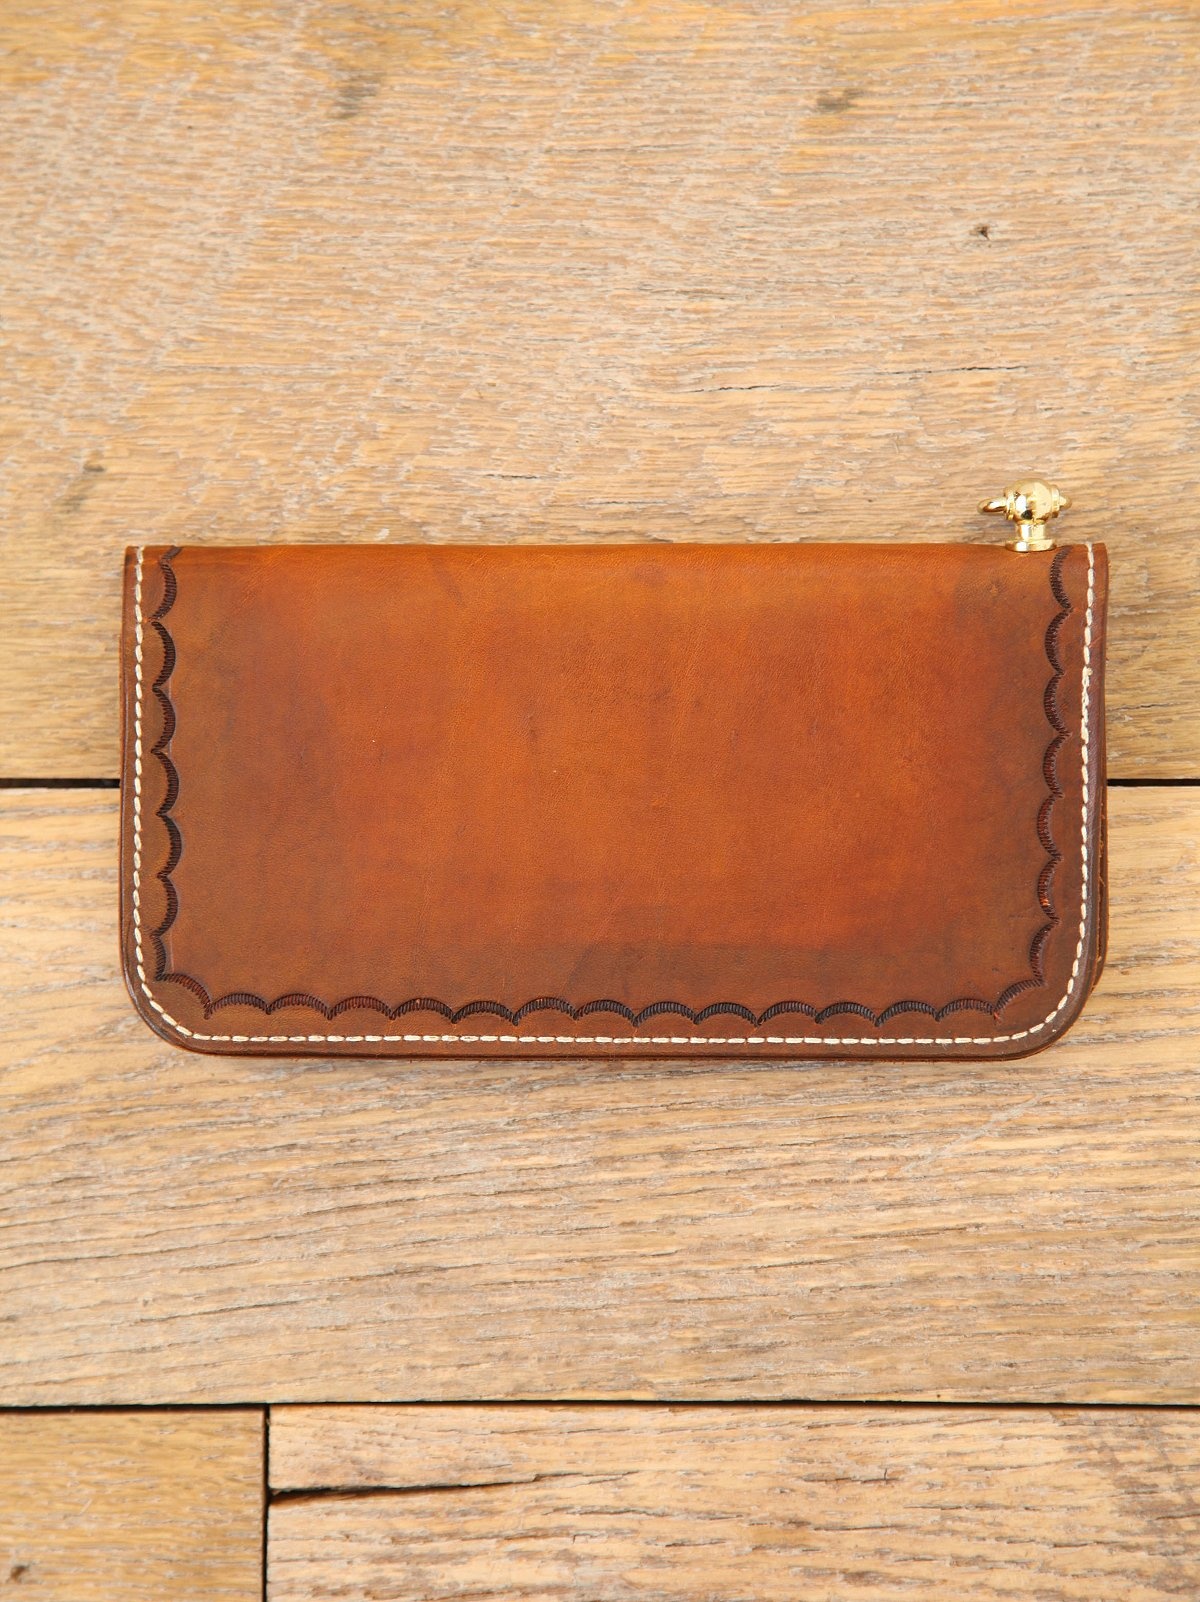 Vintage Etched Leather Wallet